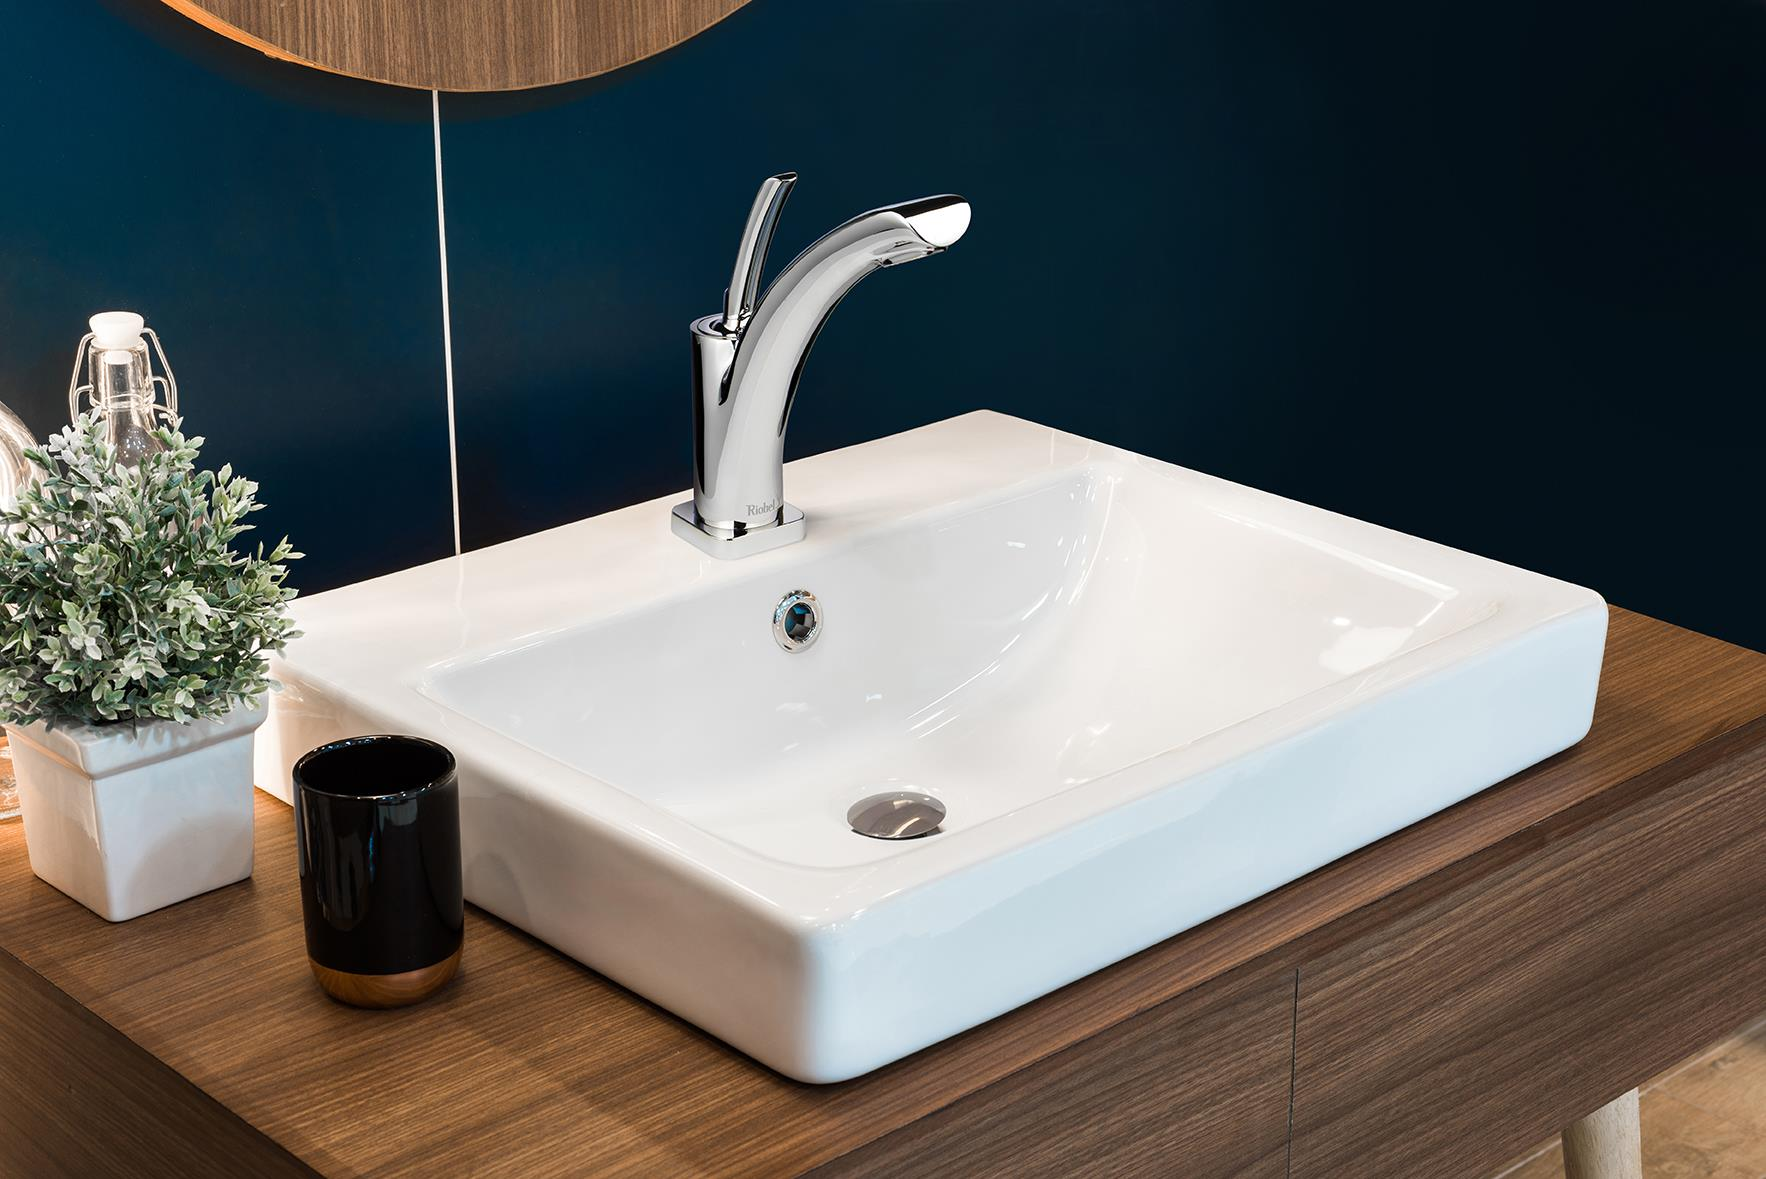 Riobel Luxury Bathroom Sinks